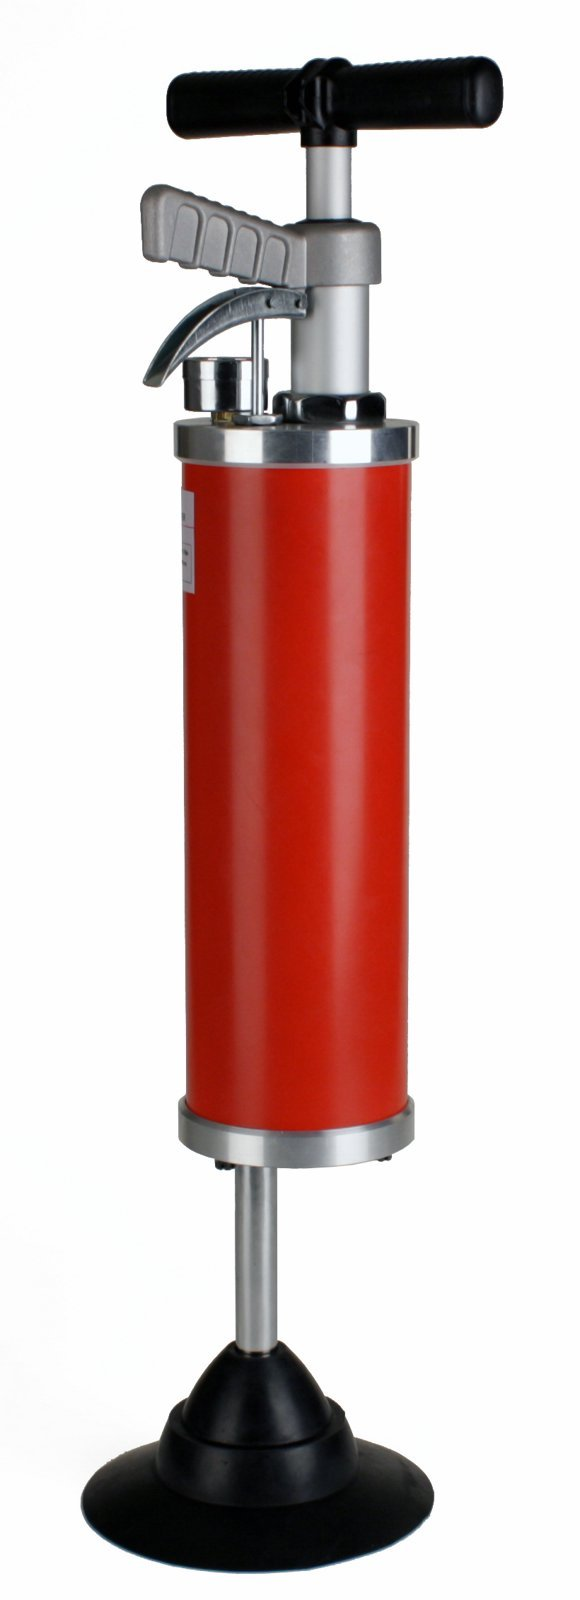 Steel Dragon Tools 95 High-Pressure Compressed Air Plunger Heavy-Duty Toilet Plunger for Drain Lines by Steel Dragon Tools (Image #2)